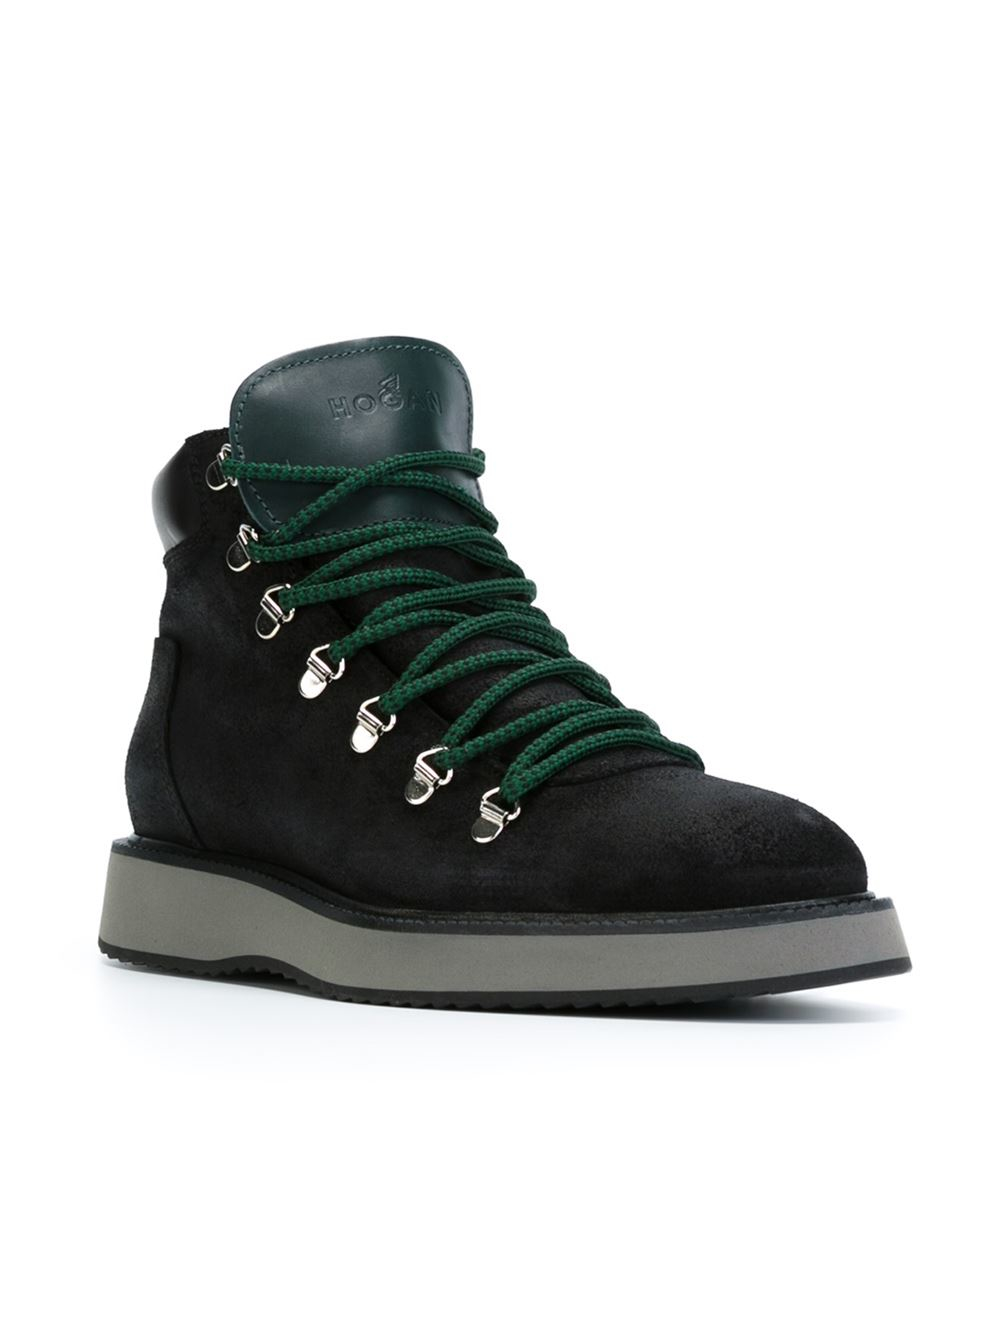 Hogan 'route X H271' Lace-up Boots in Black for Men - Lyst